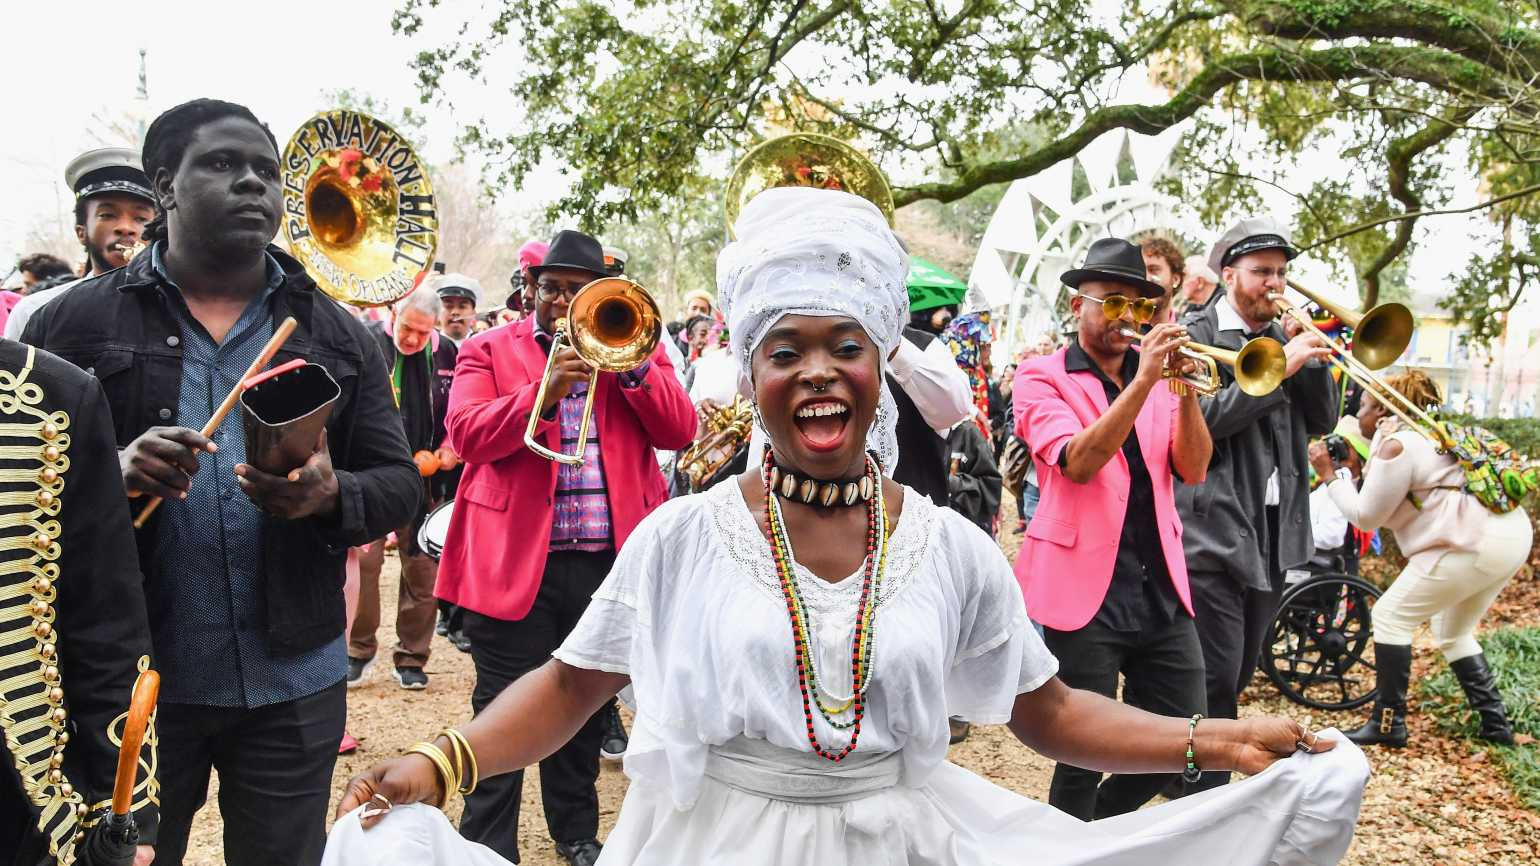 Congo Square, New Orleans, Getty Images